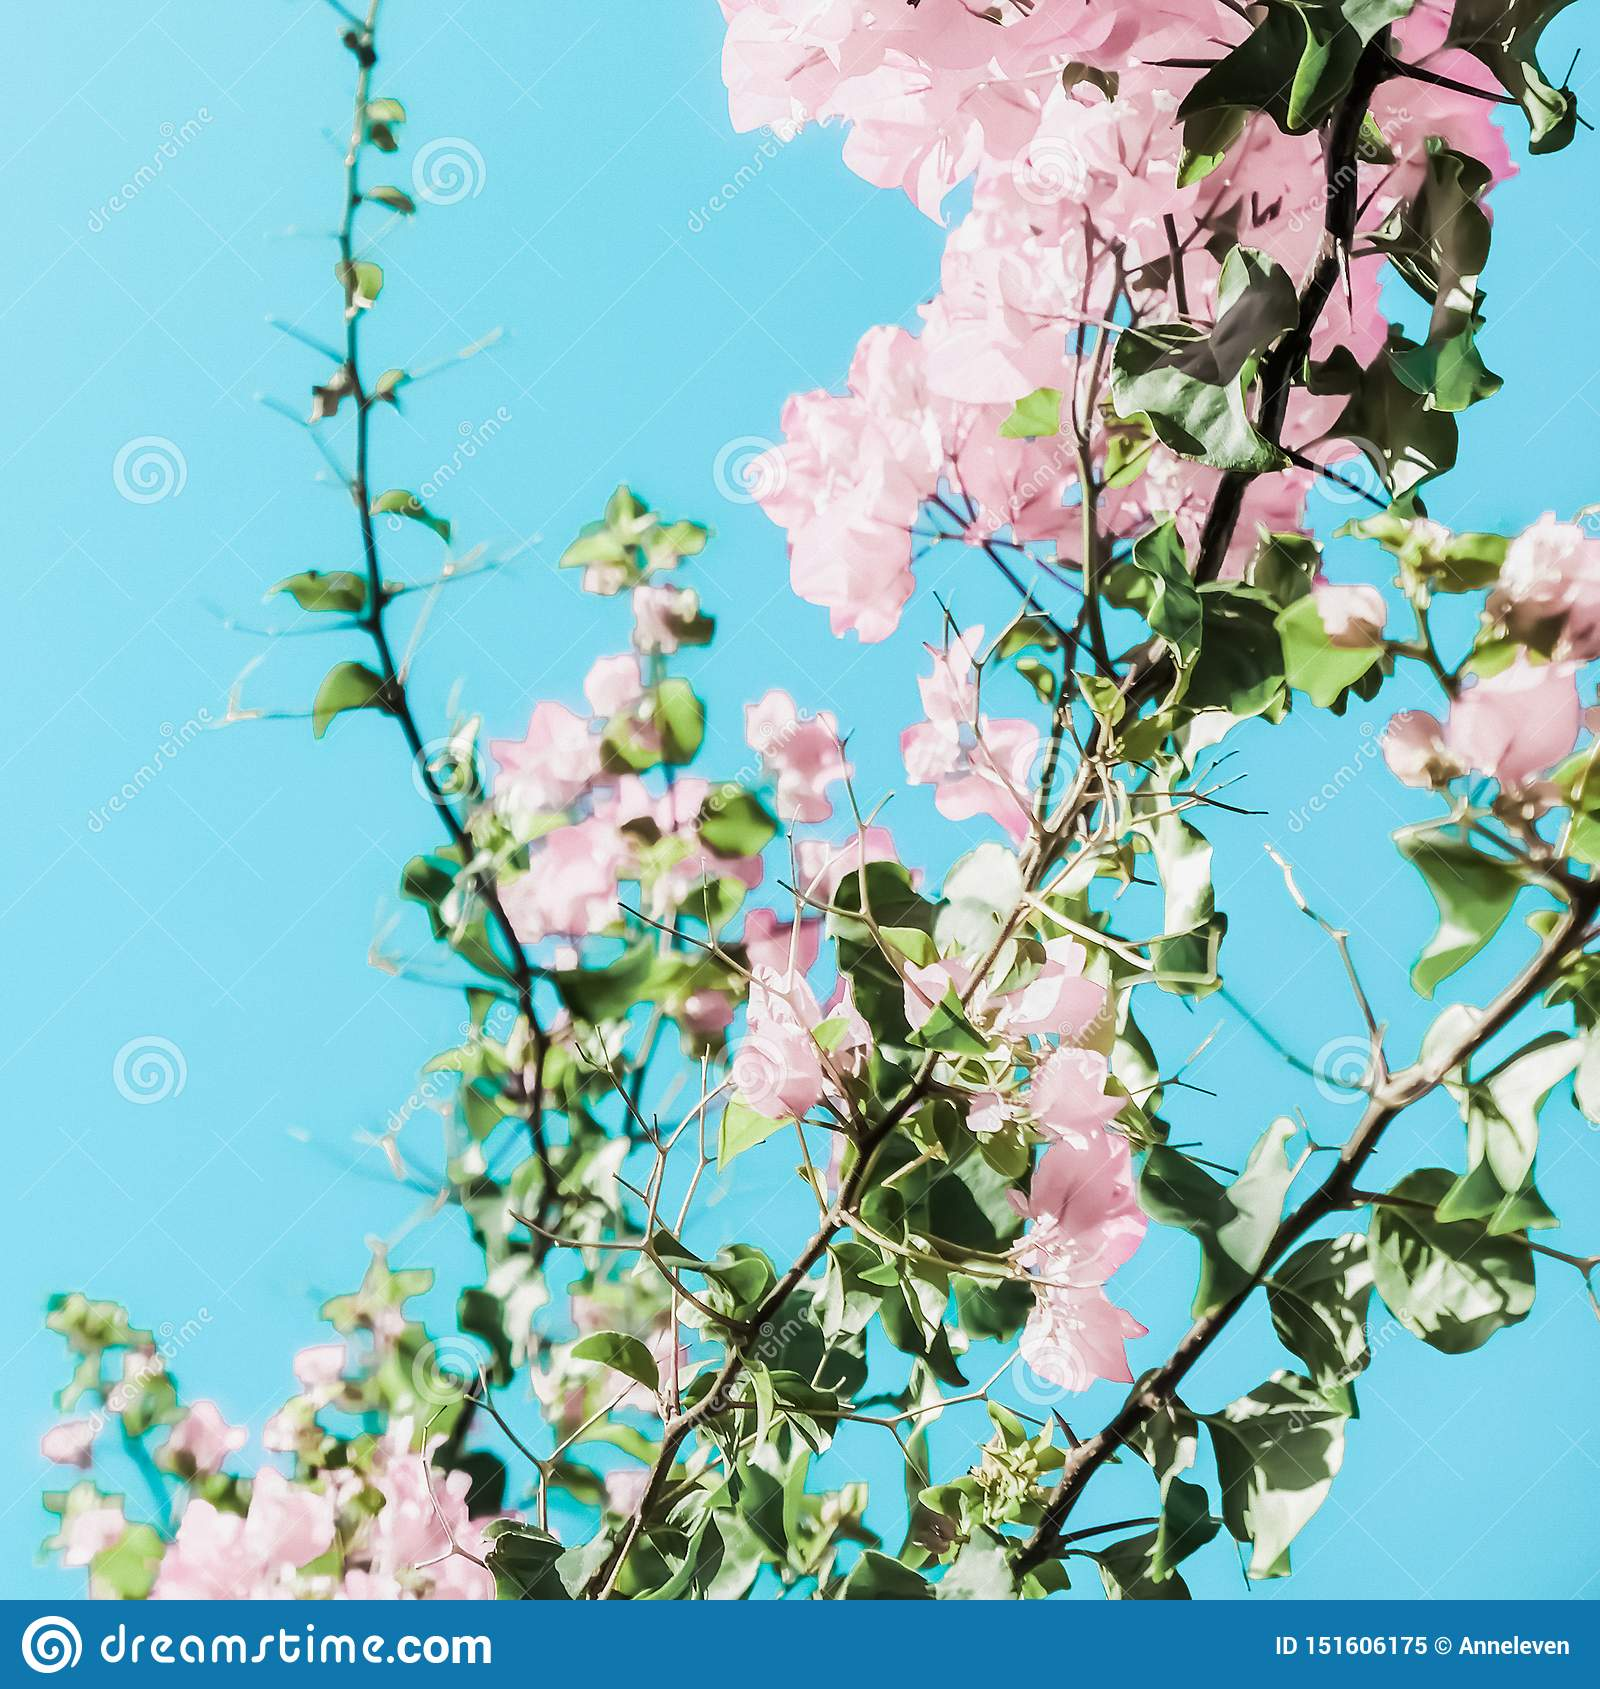 Pastel pink blooming flowers and blue sky in a dream garden, floral background